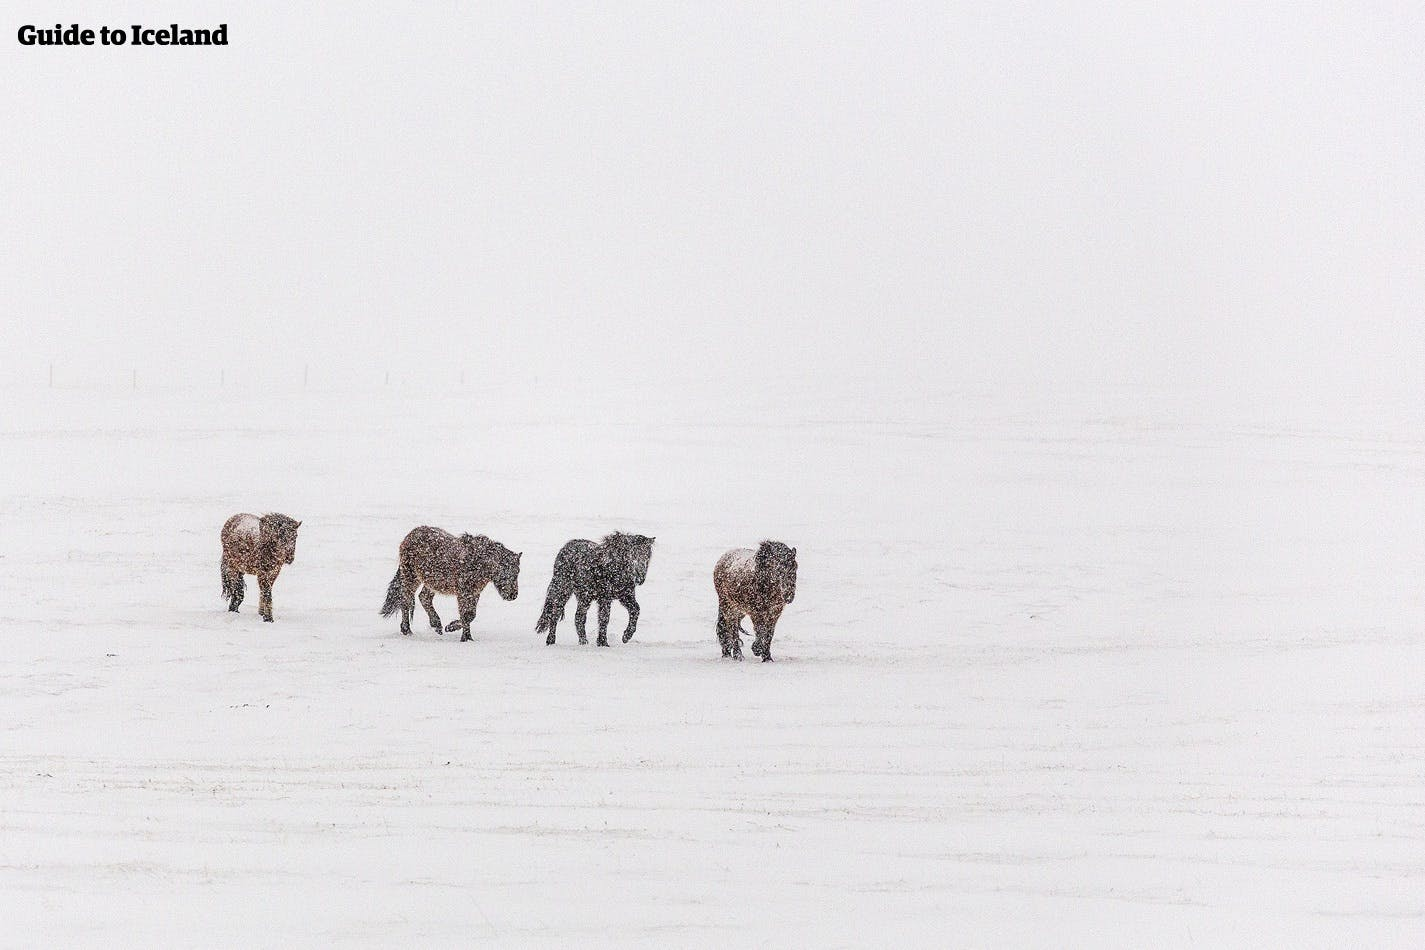 Icelandic horses are not particularly concerned by Iceland's winter weather.